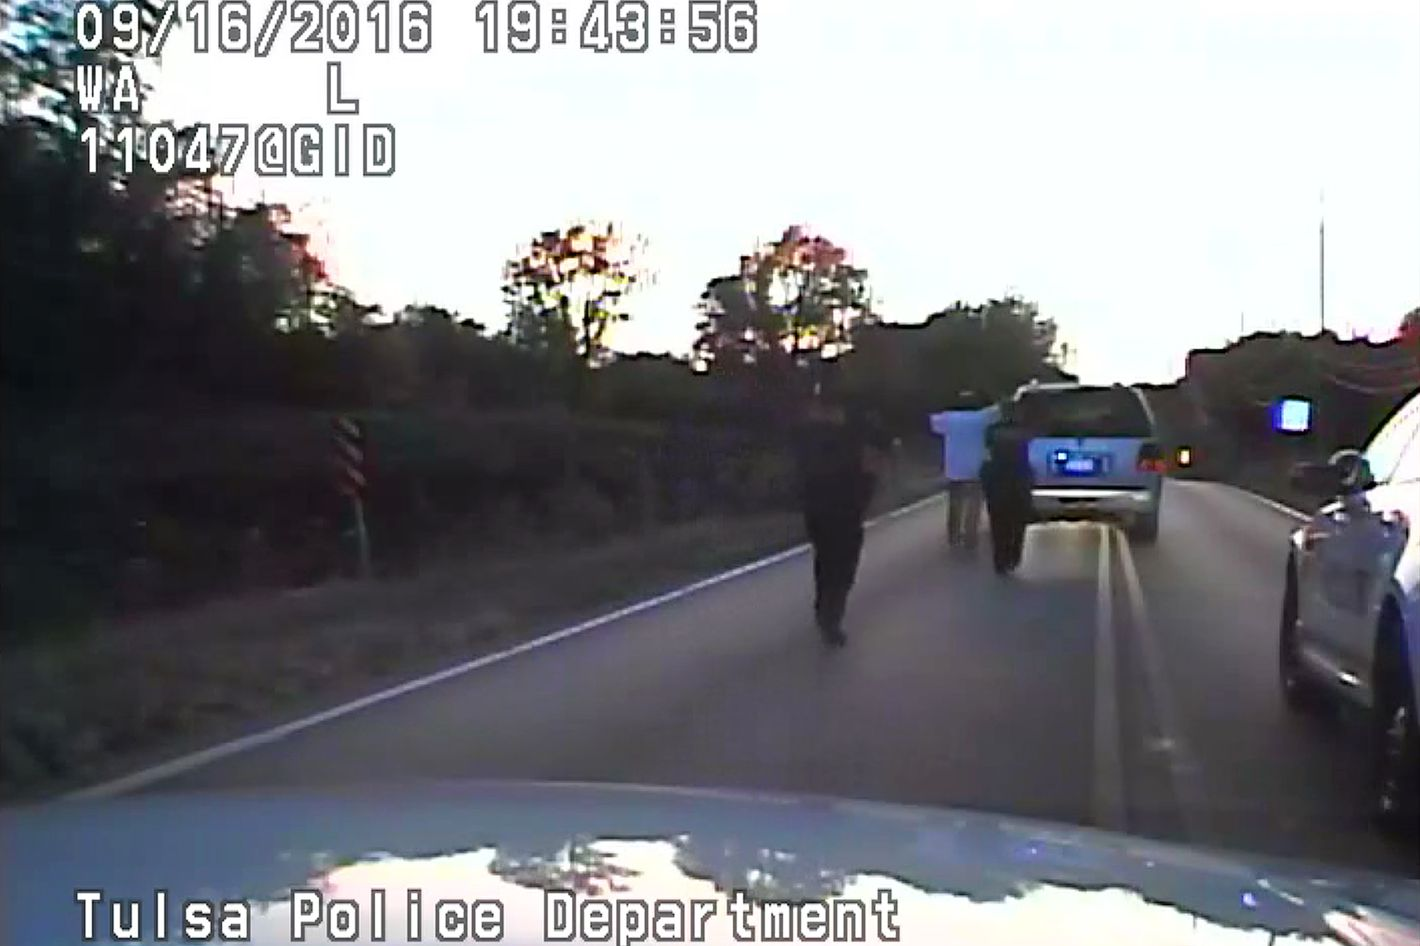 Department of Justice, Oklahoma Launch Investigation into Death of Terence Crutcher